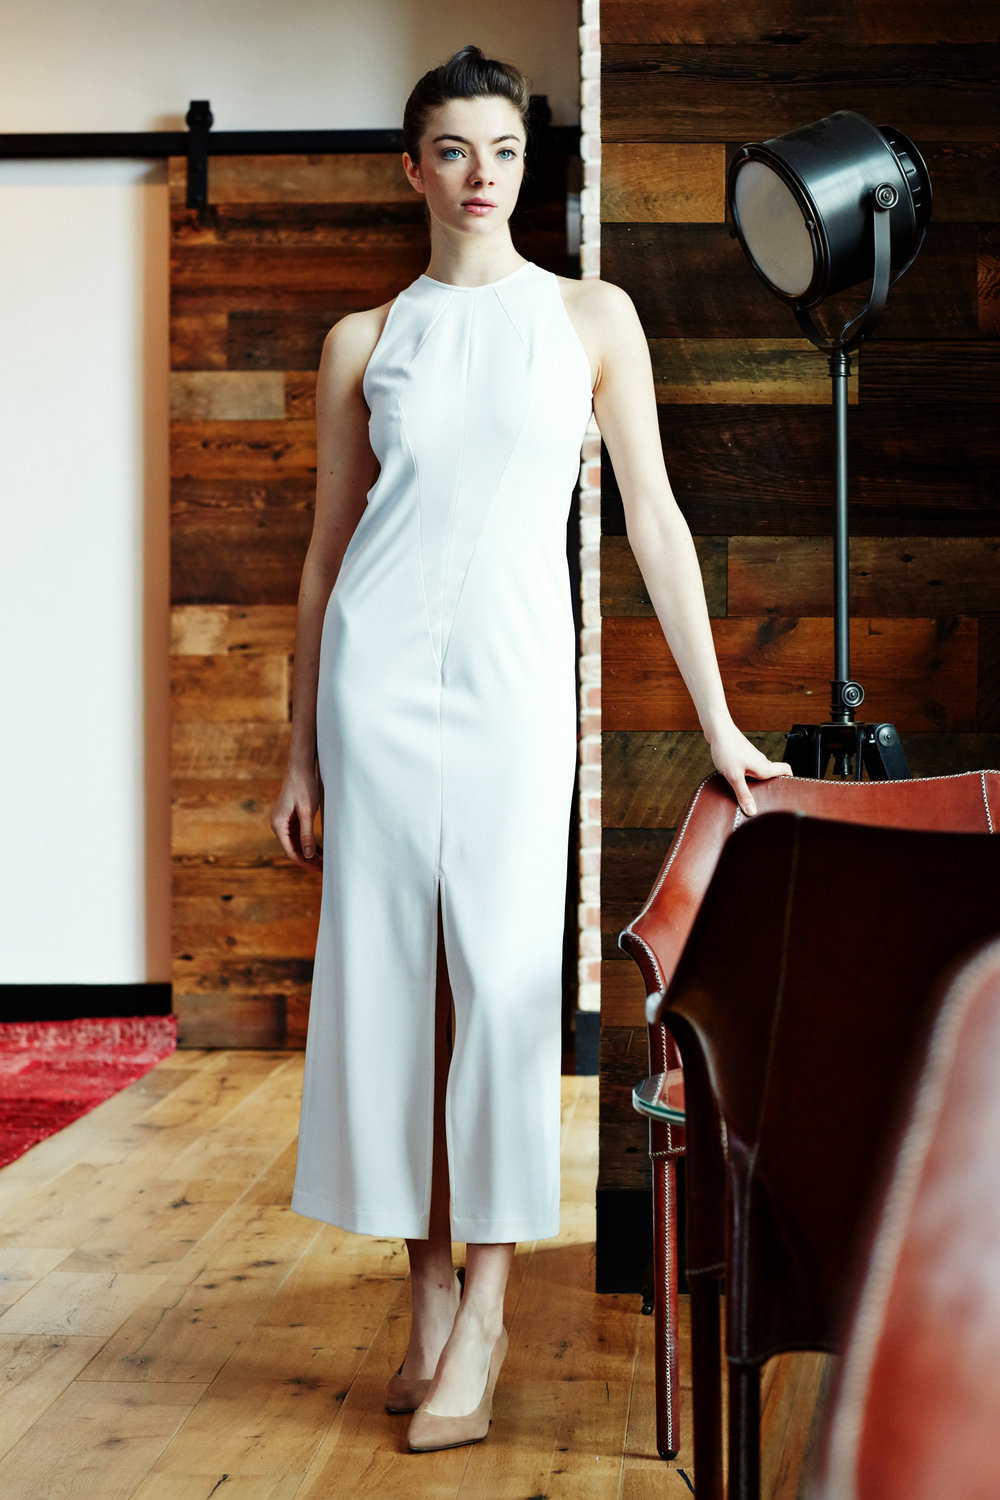 Minika-Ko-Kovasky-Collection-Lookbook-Fashion-Performance-Fabrics-White-Long-Dress-with-Open-Back-Water-Resistant-Evening-Wear-Business-Casual-Cocktail-Dress-Elegant-Style.jpg